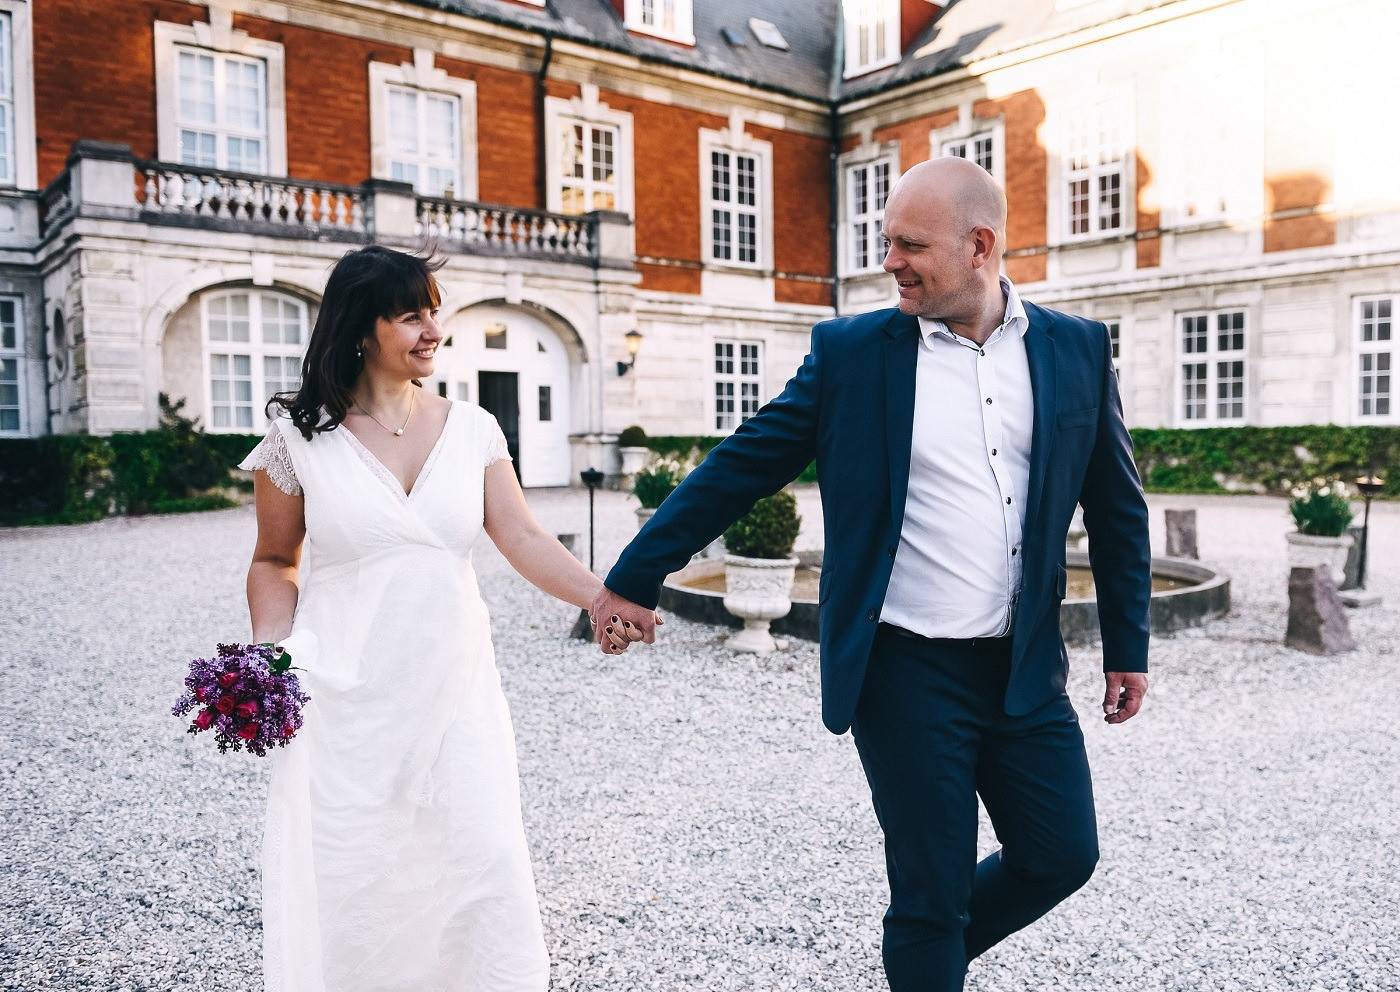 Marina & Daniel eloping abroad for their castle wedding at the Hvedholm Castle.